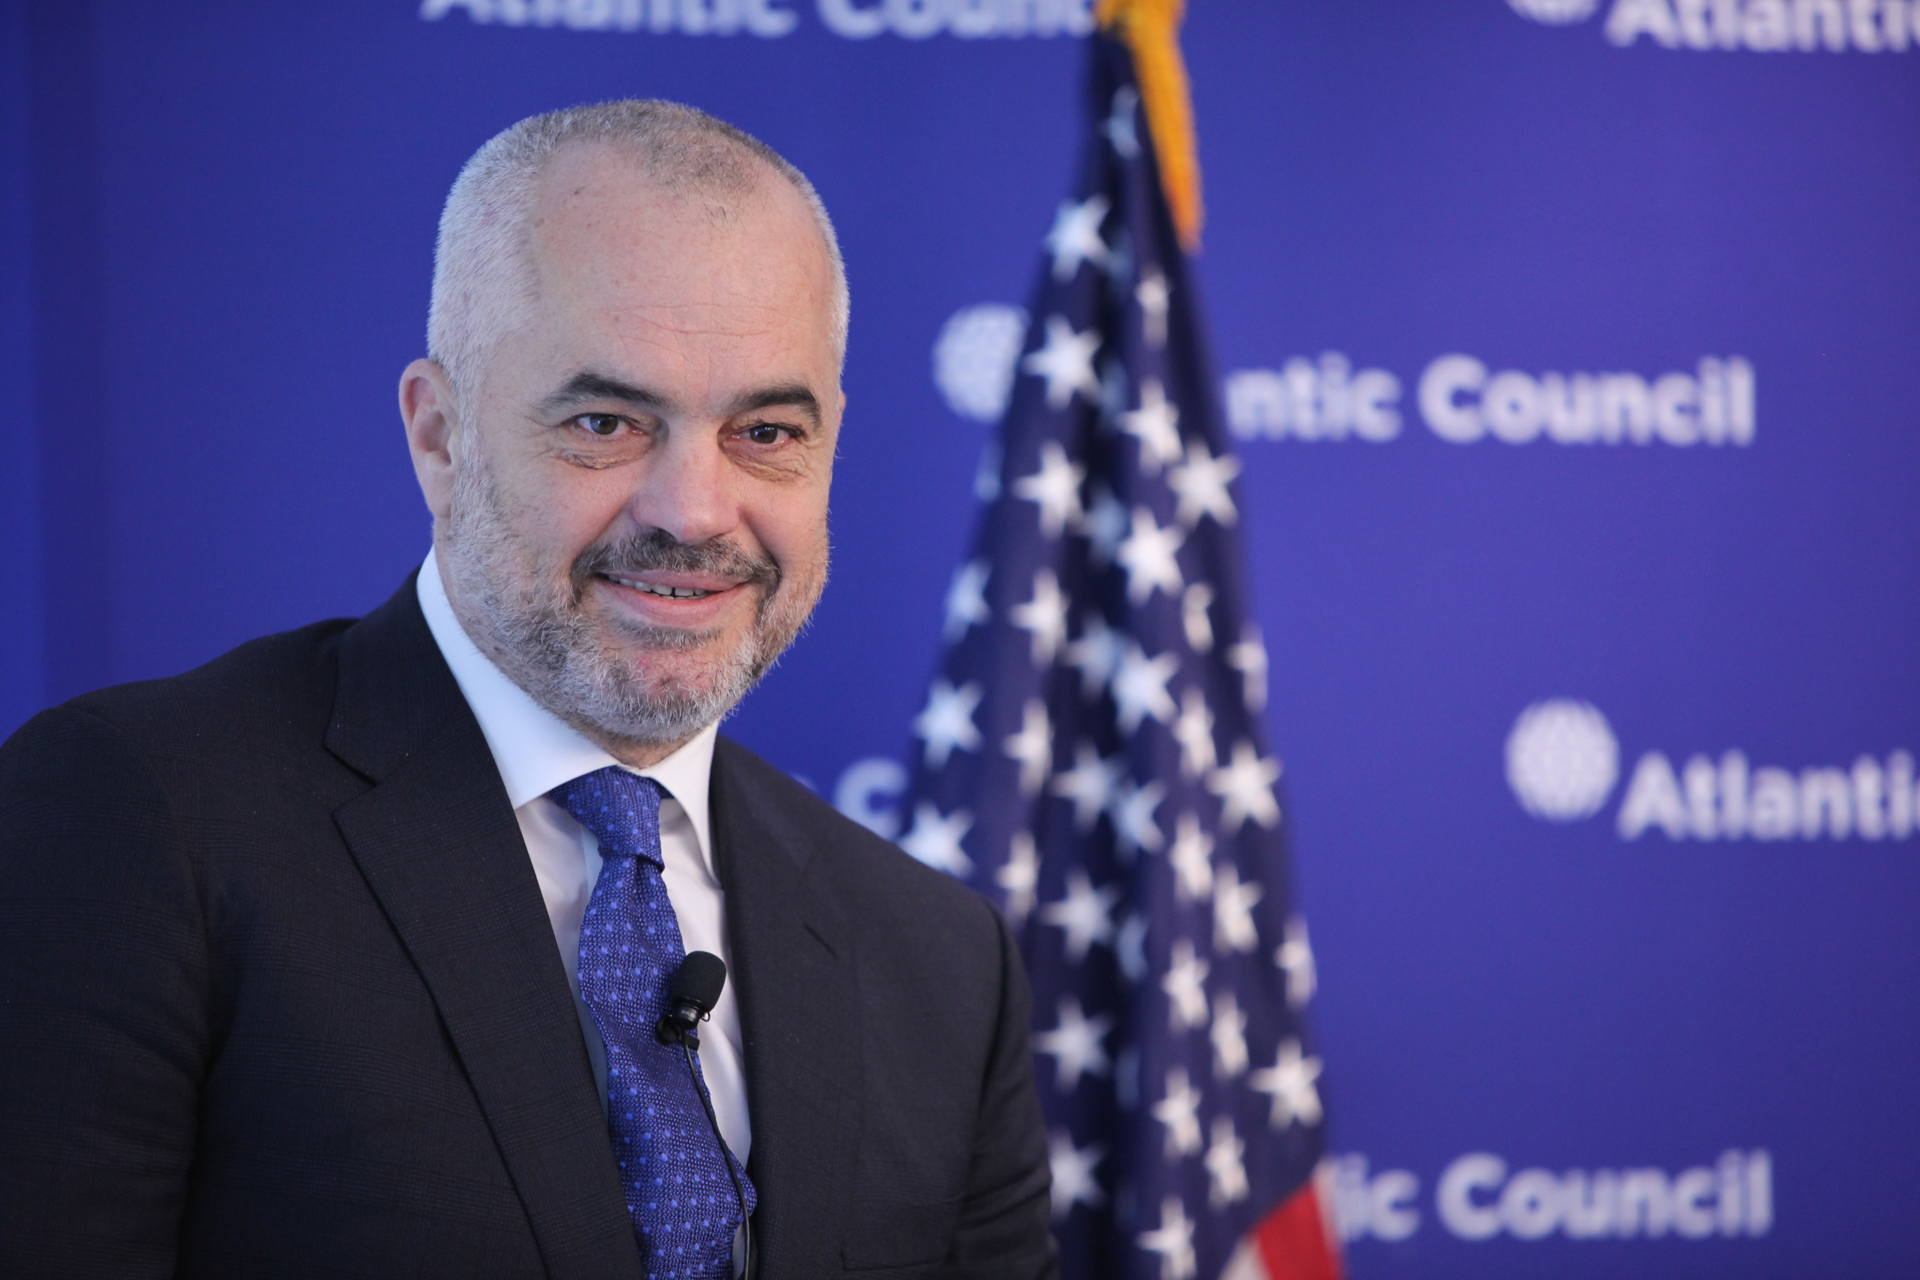 Albania's Prime Minister Edi Rama: Enlargement a Secondary Priority for the European Union